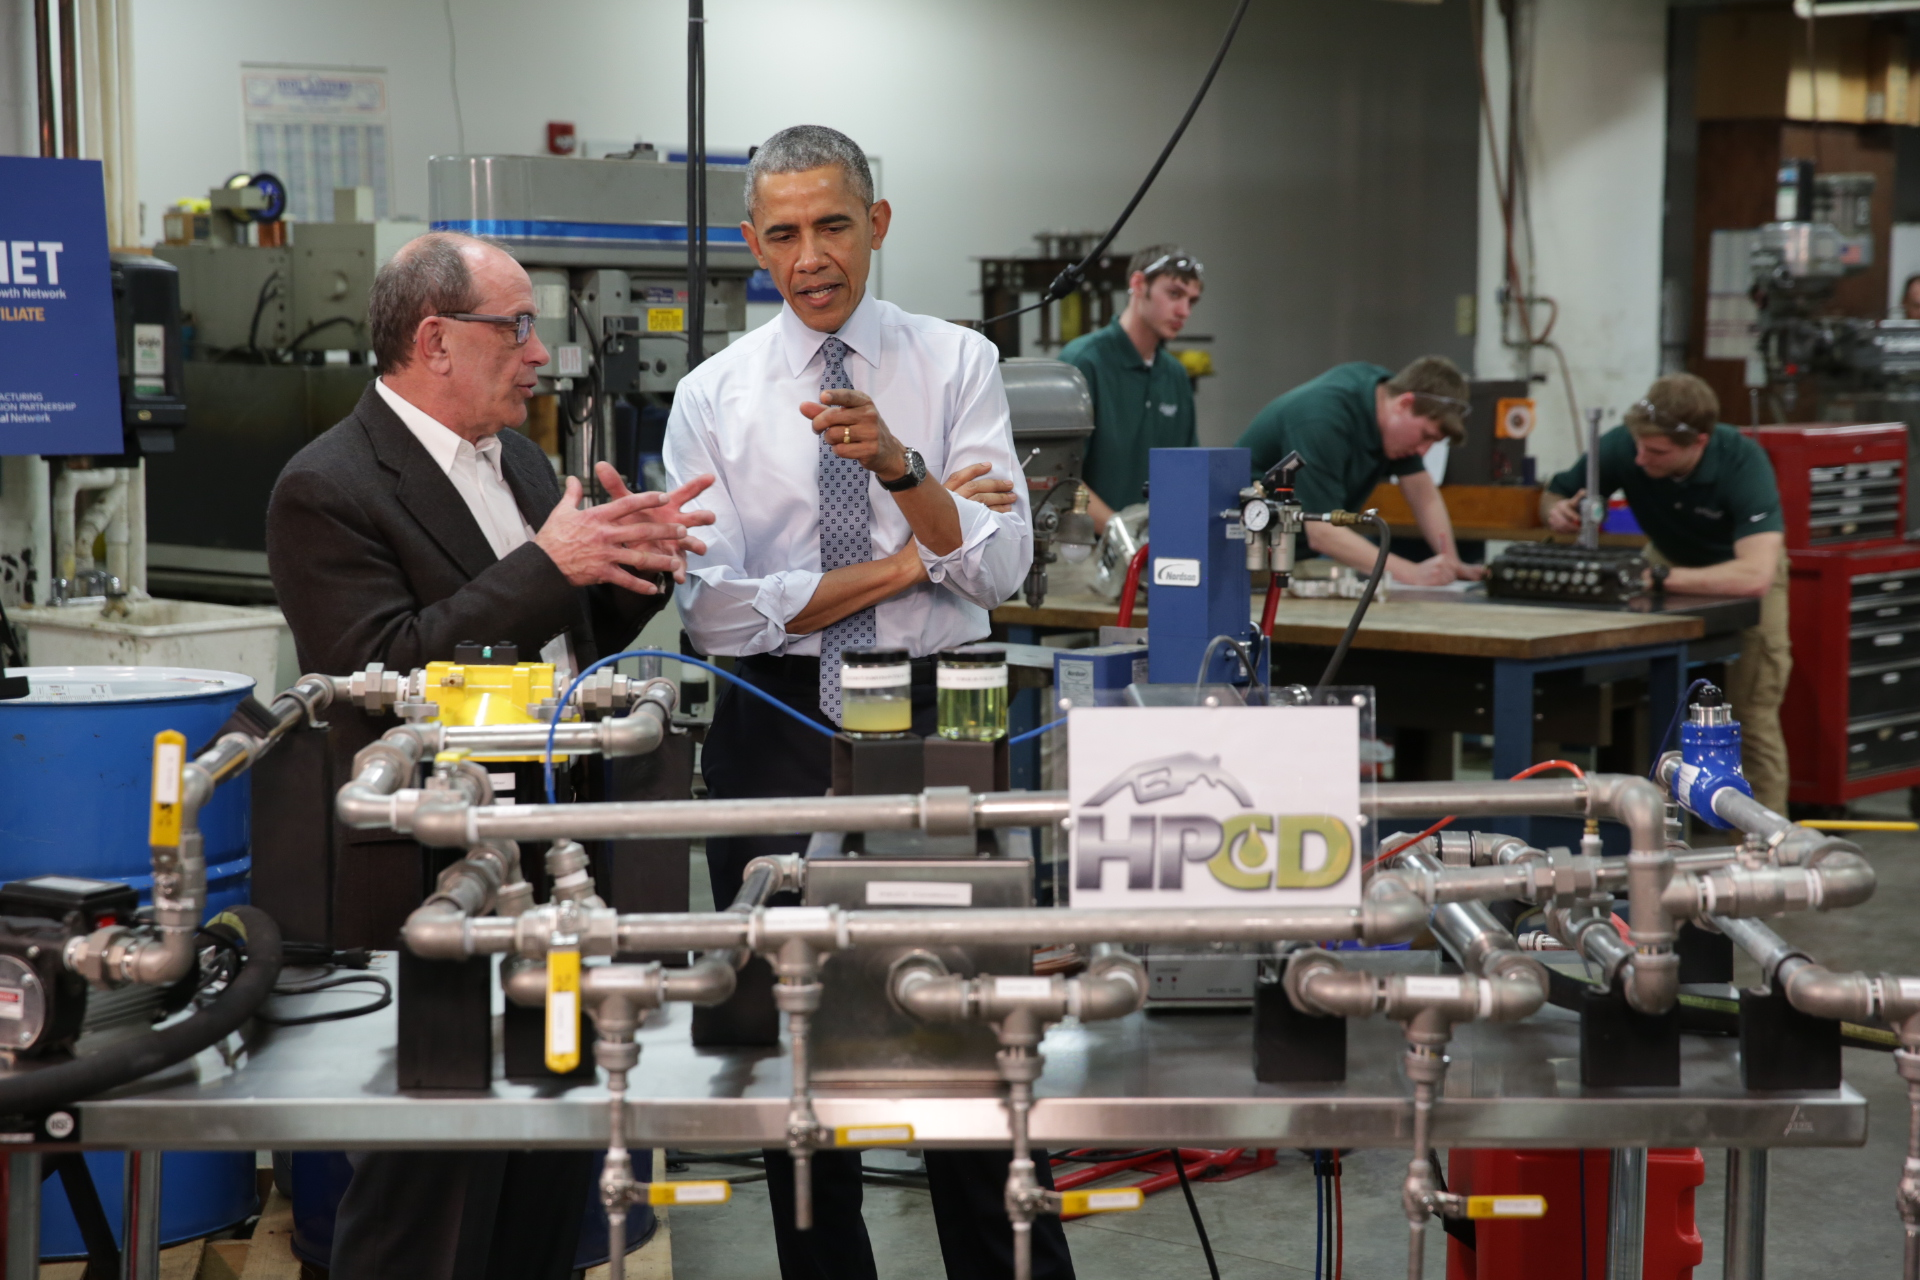 President Obama tours the MAGNET Innovation Center at Cleveland State University